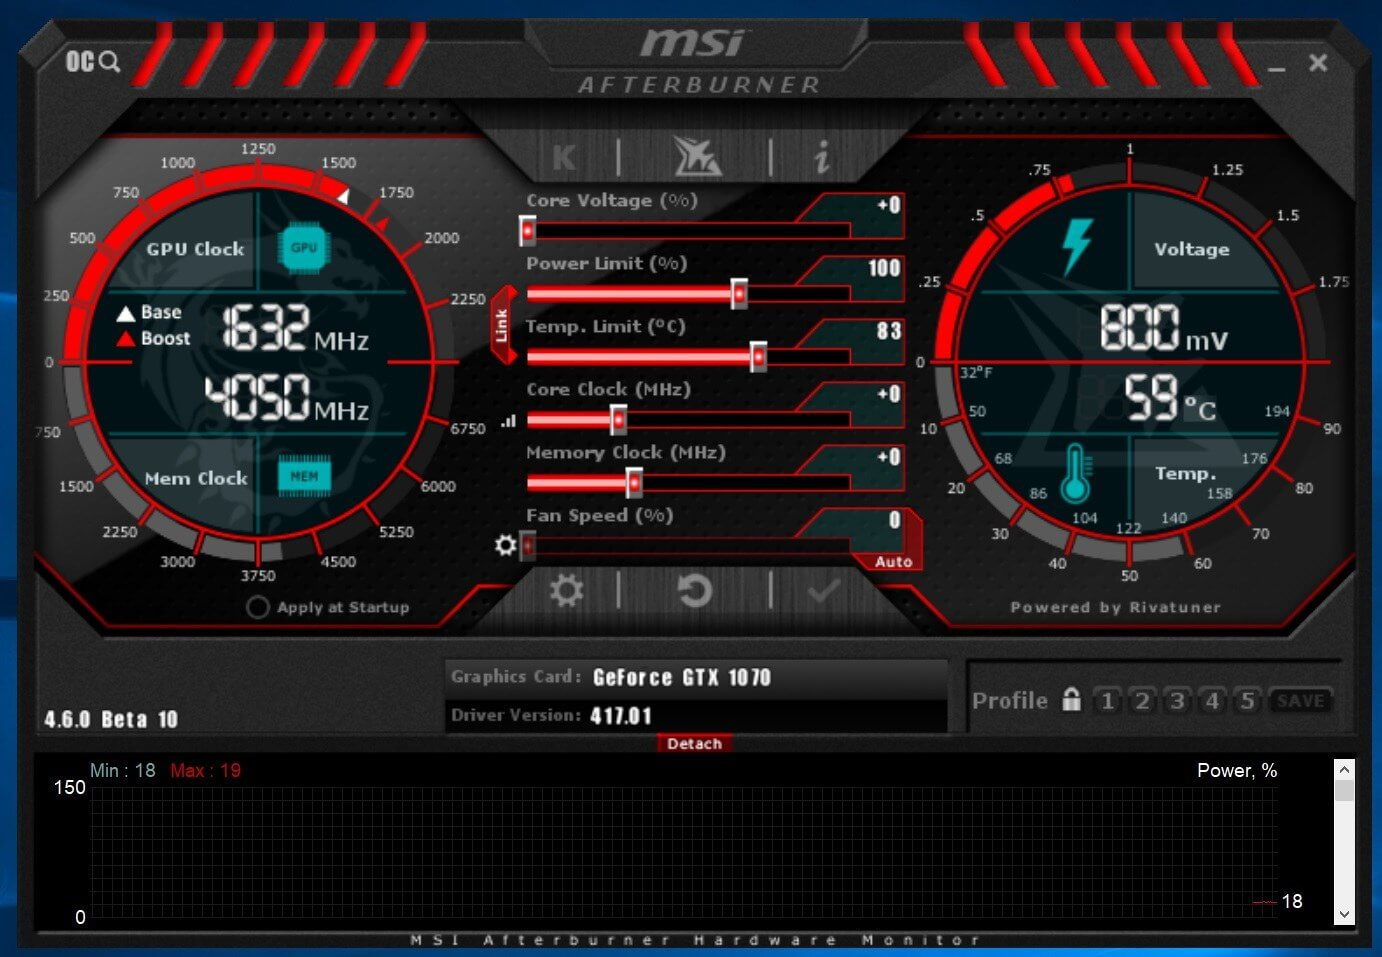 Nvidia's 'OC Scanner' automatic overclocking feature is now